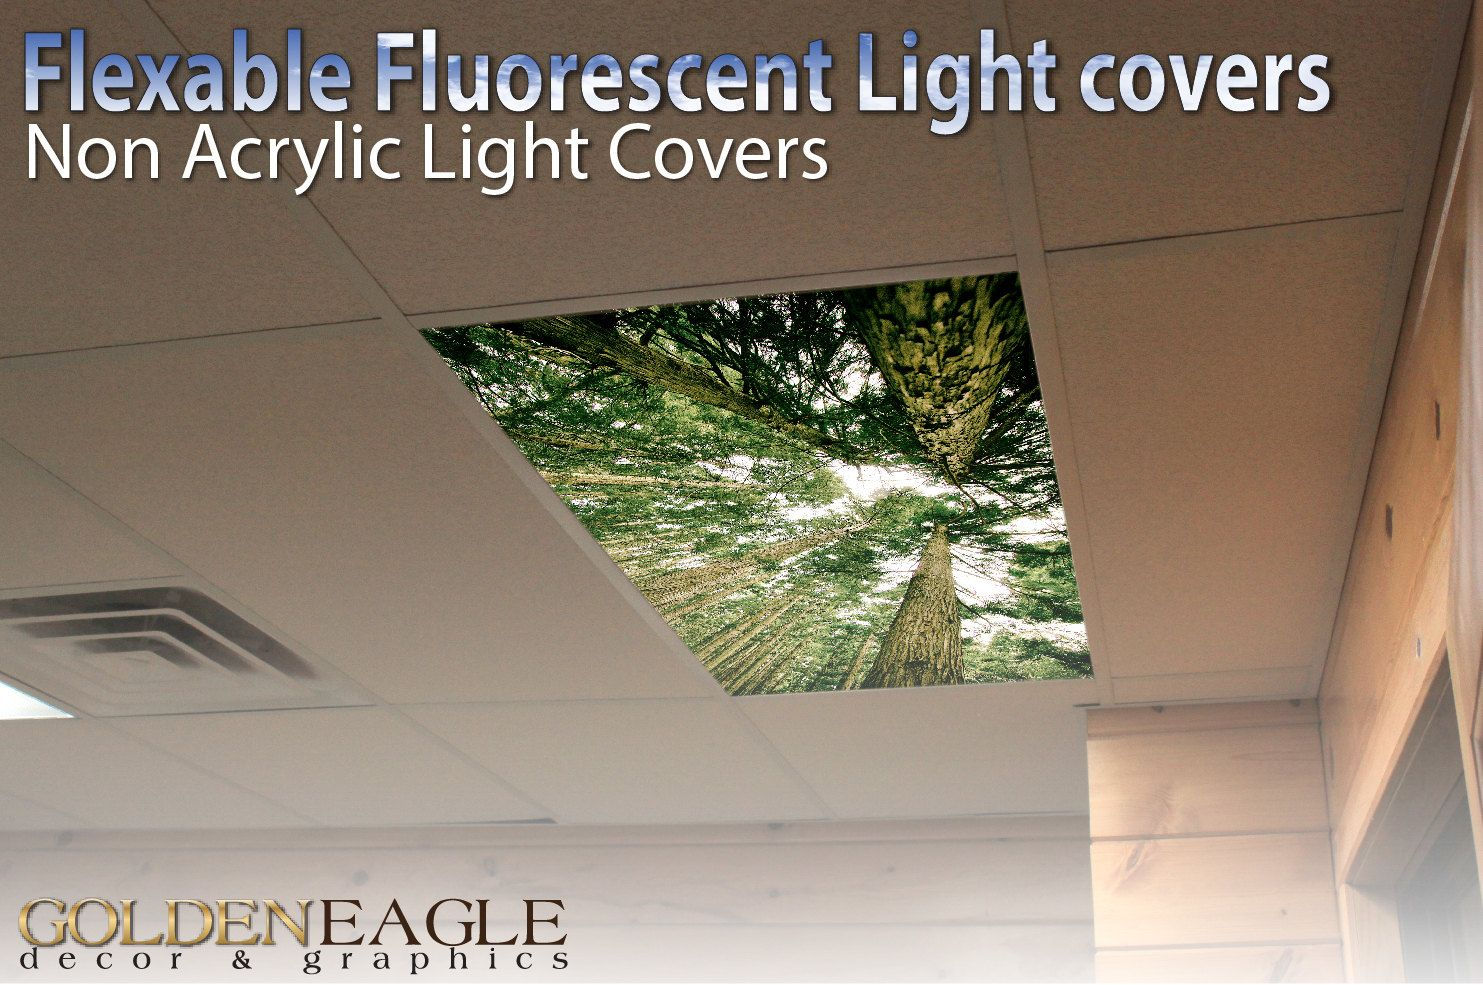 Flexible fluorescent light cover films skylight ceiling office flexible fluorescent light cover films skylight ceiling office medical dental beach palm canopy medical examination light covers and golden eagle dailygadgetfo Images